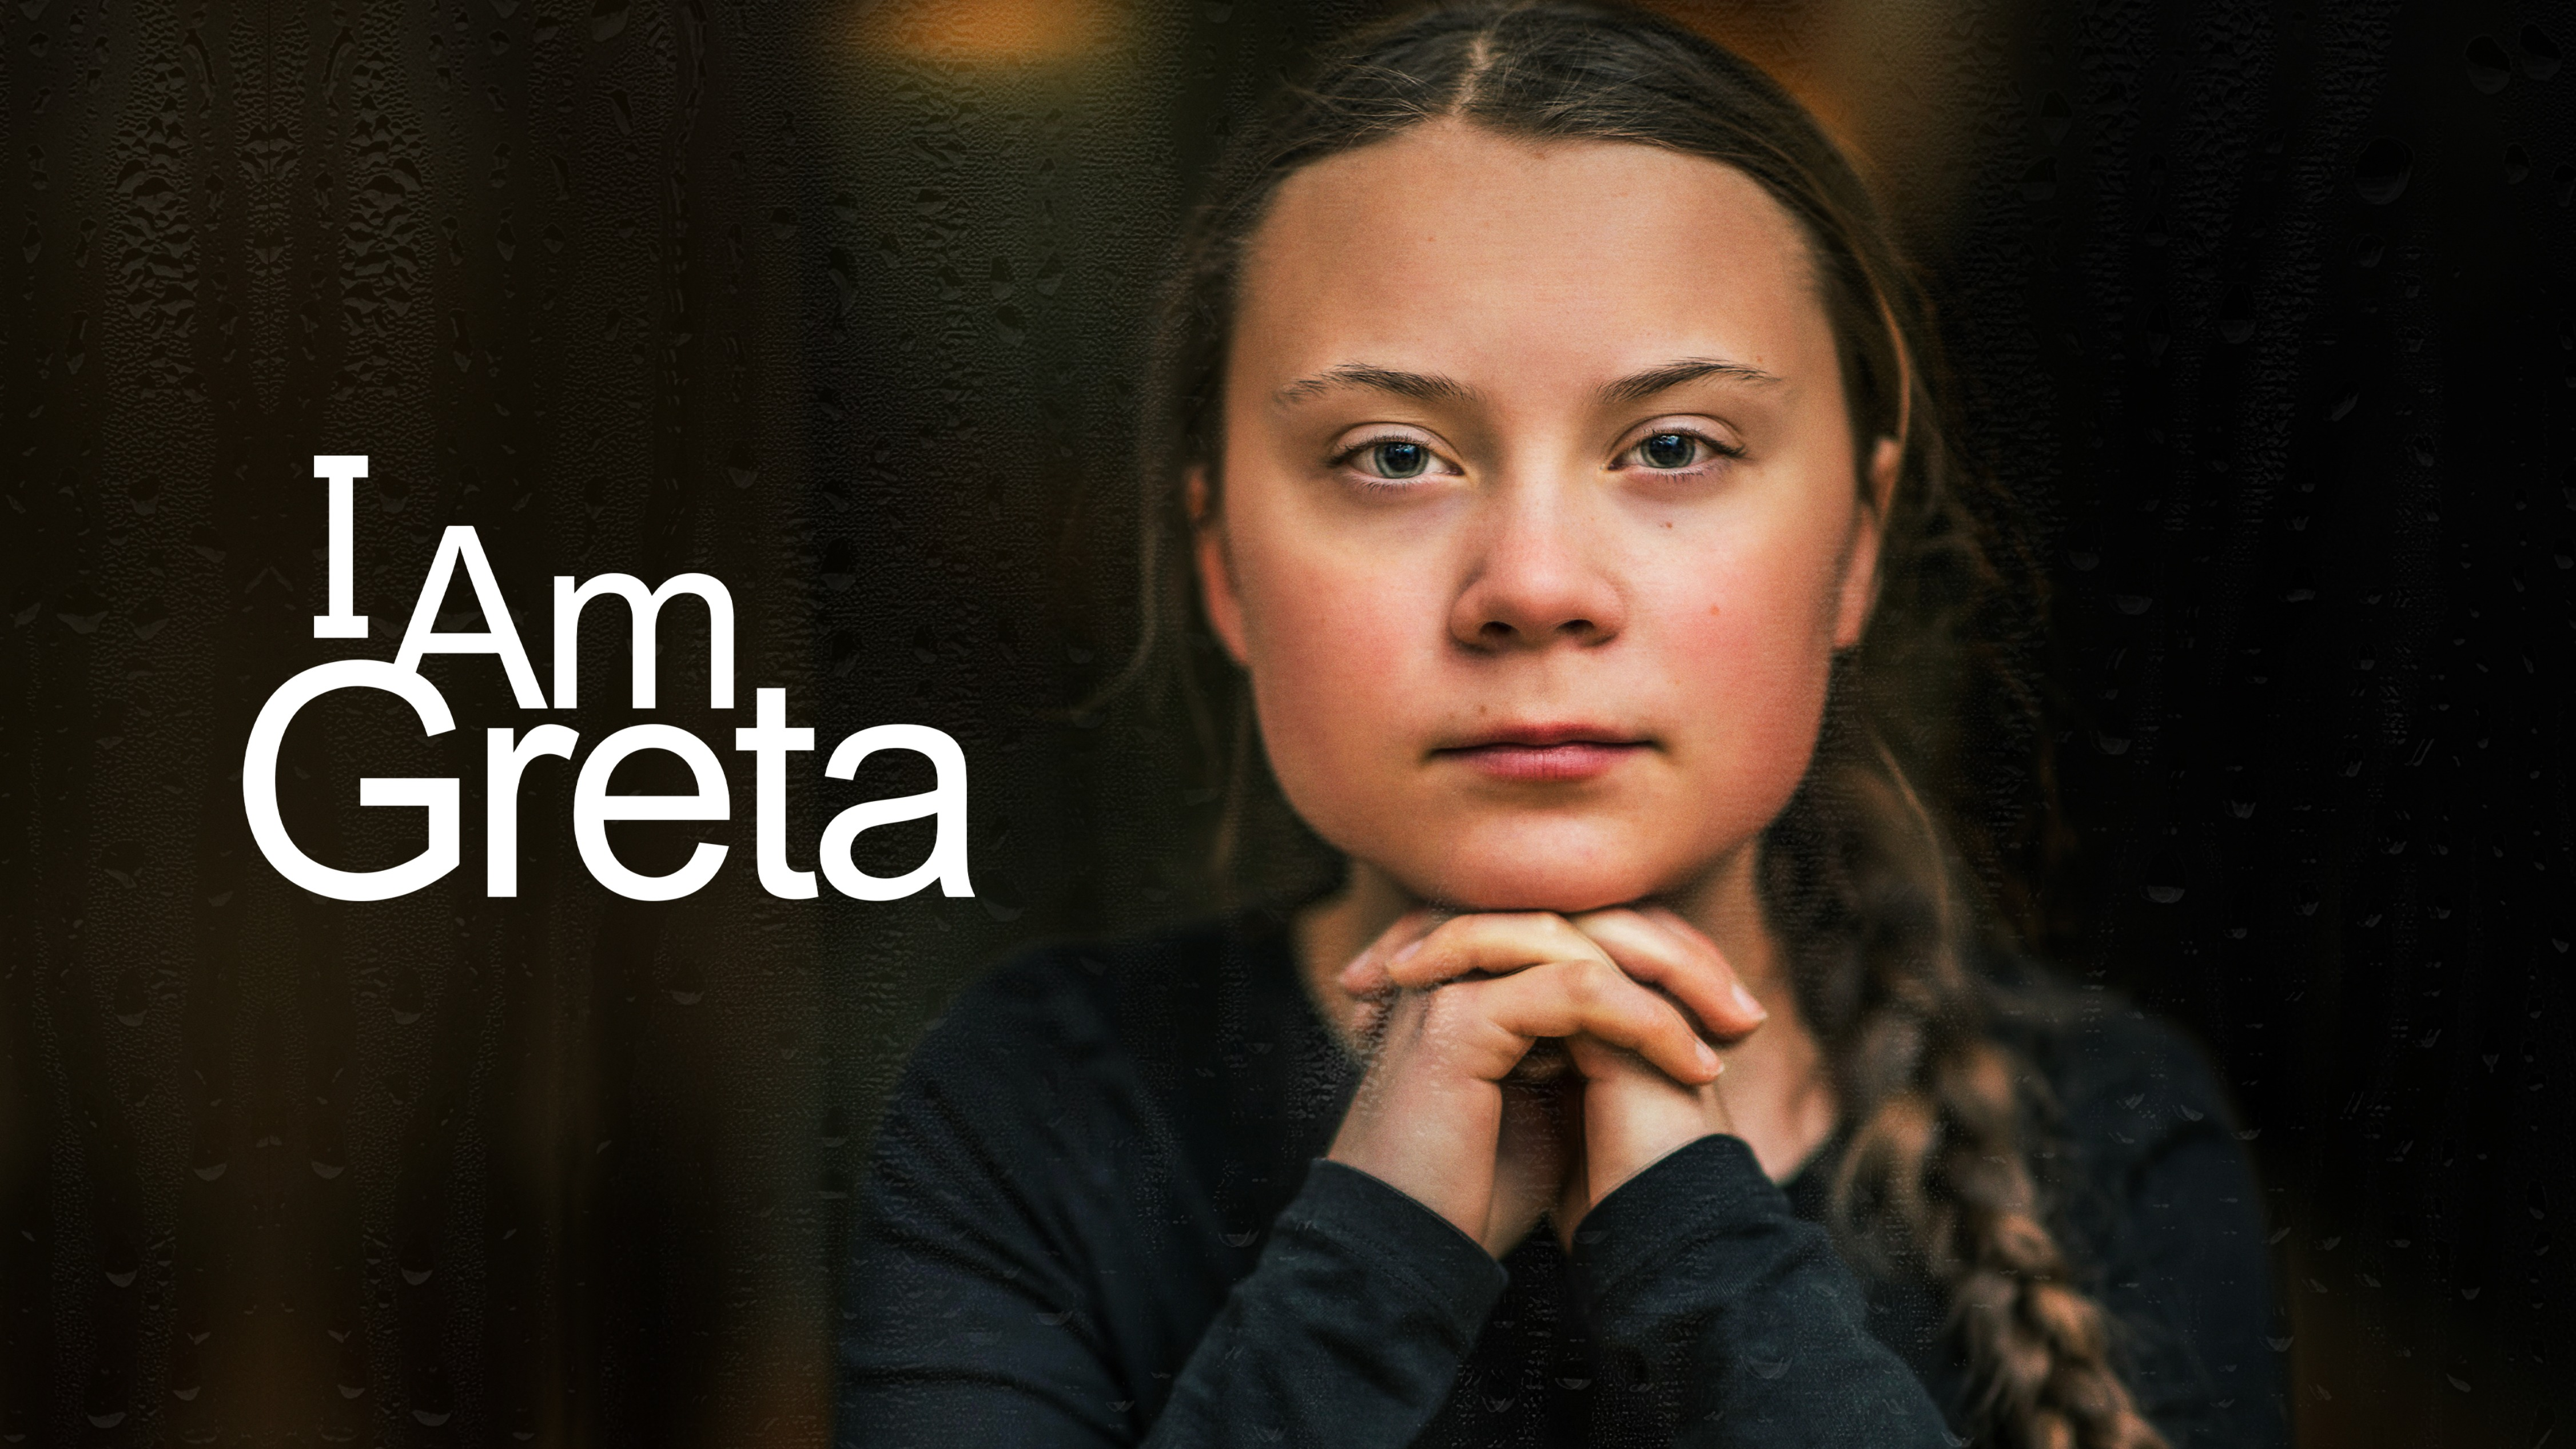 I Am Greta - Buy